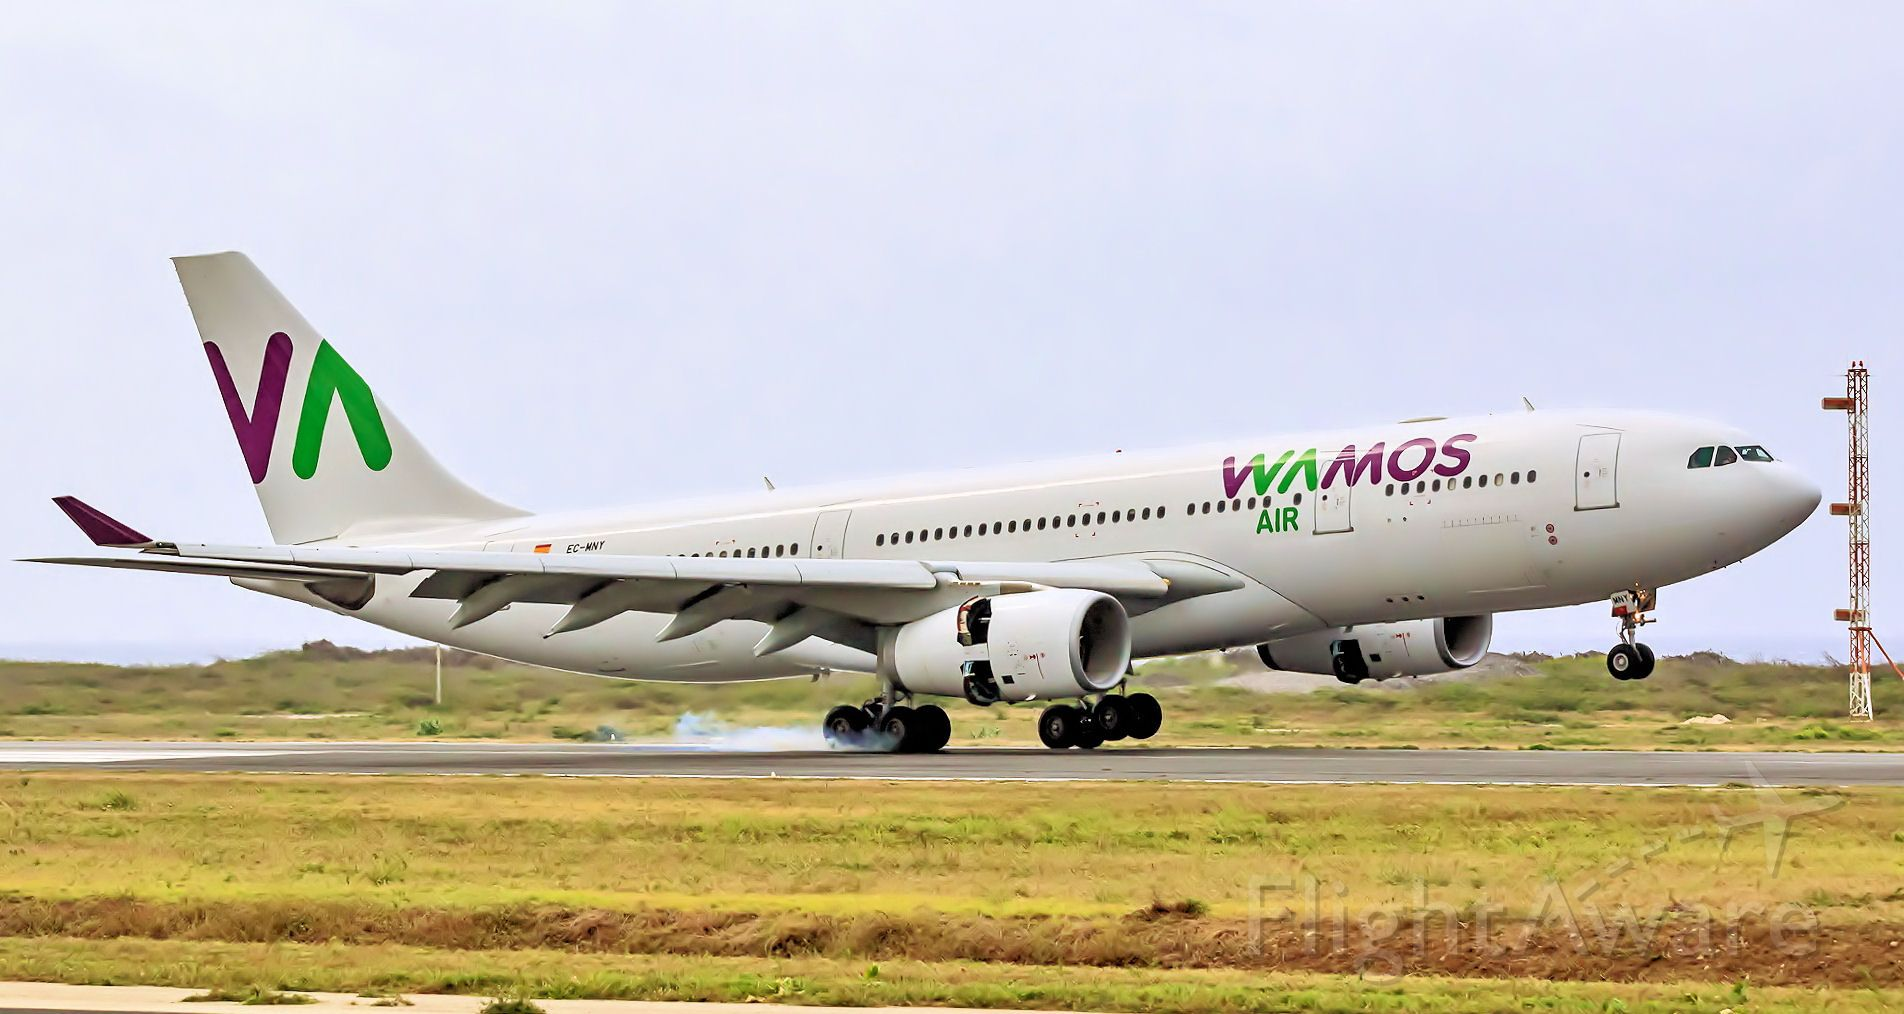 Airbus A330 (EC-MNY) - Wamos landing at TNCC as a chater flight for TUI.